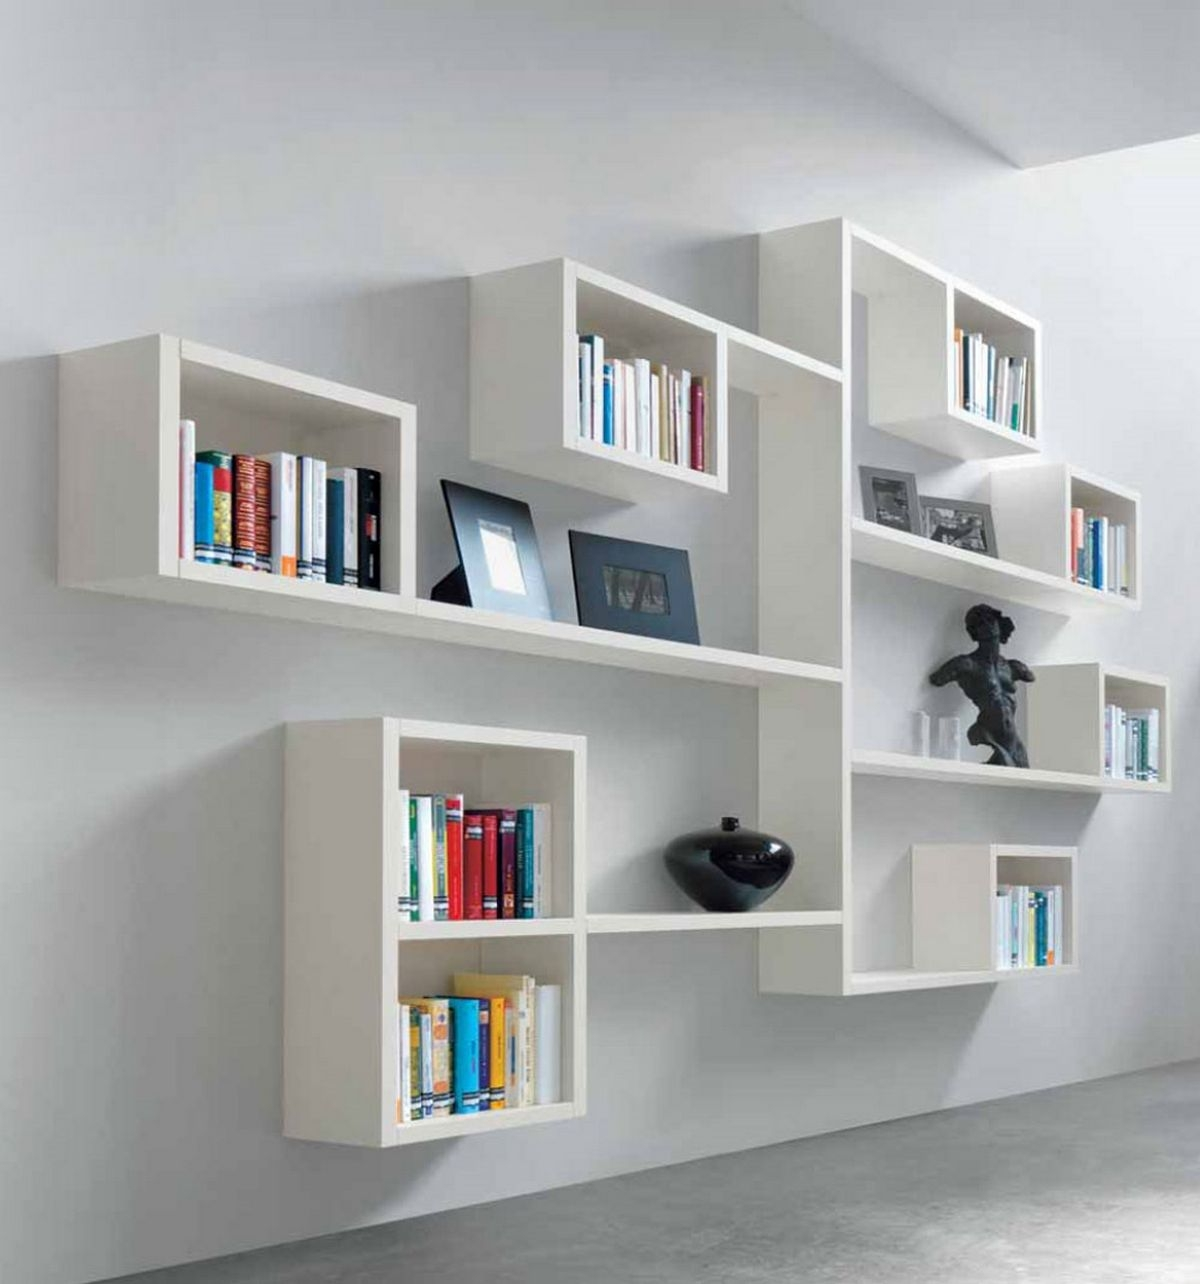 26 Of The Most Creative Bookshelves Designs Minimalist Book With Regard To Book Shelving Systems (View 3 of 15)